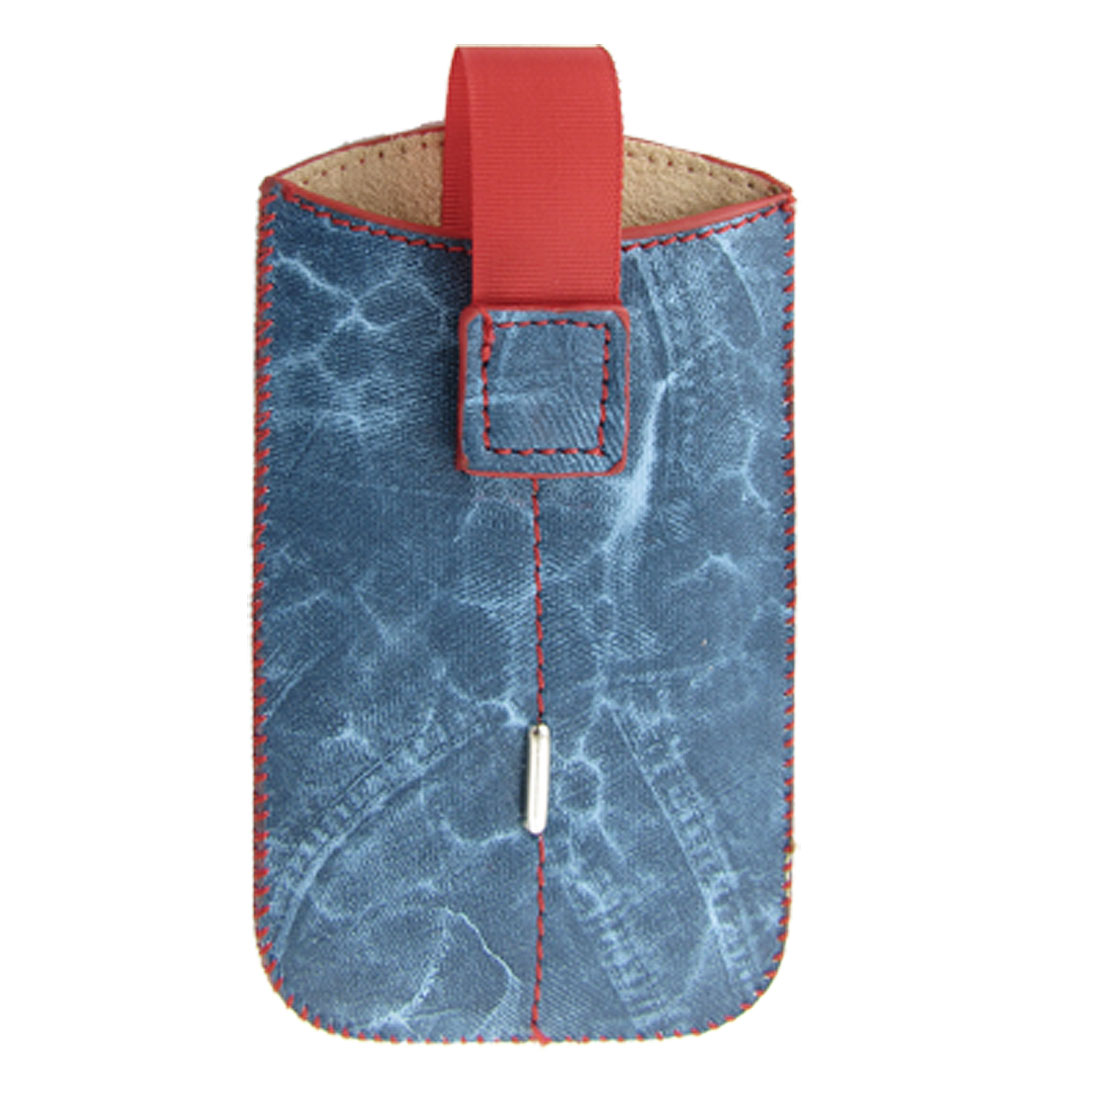 Red Line Cowboy Style Faux Leather Blue Pouch for iPhone 4 4G